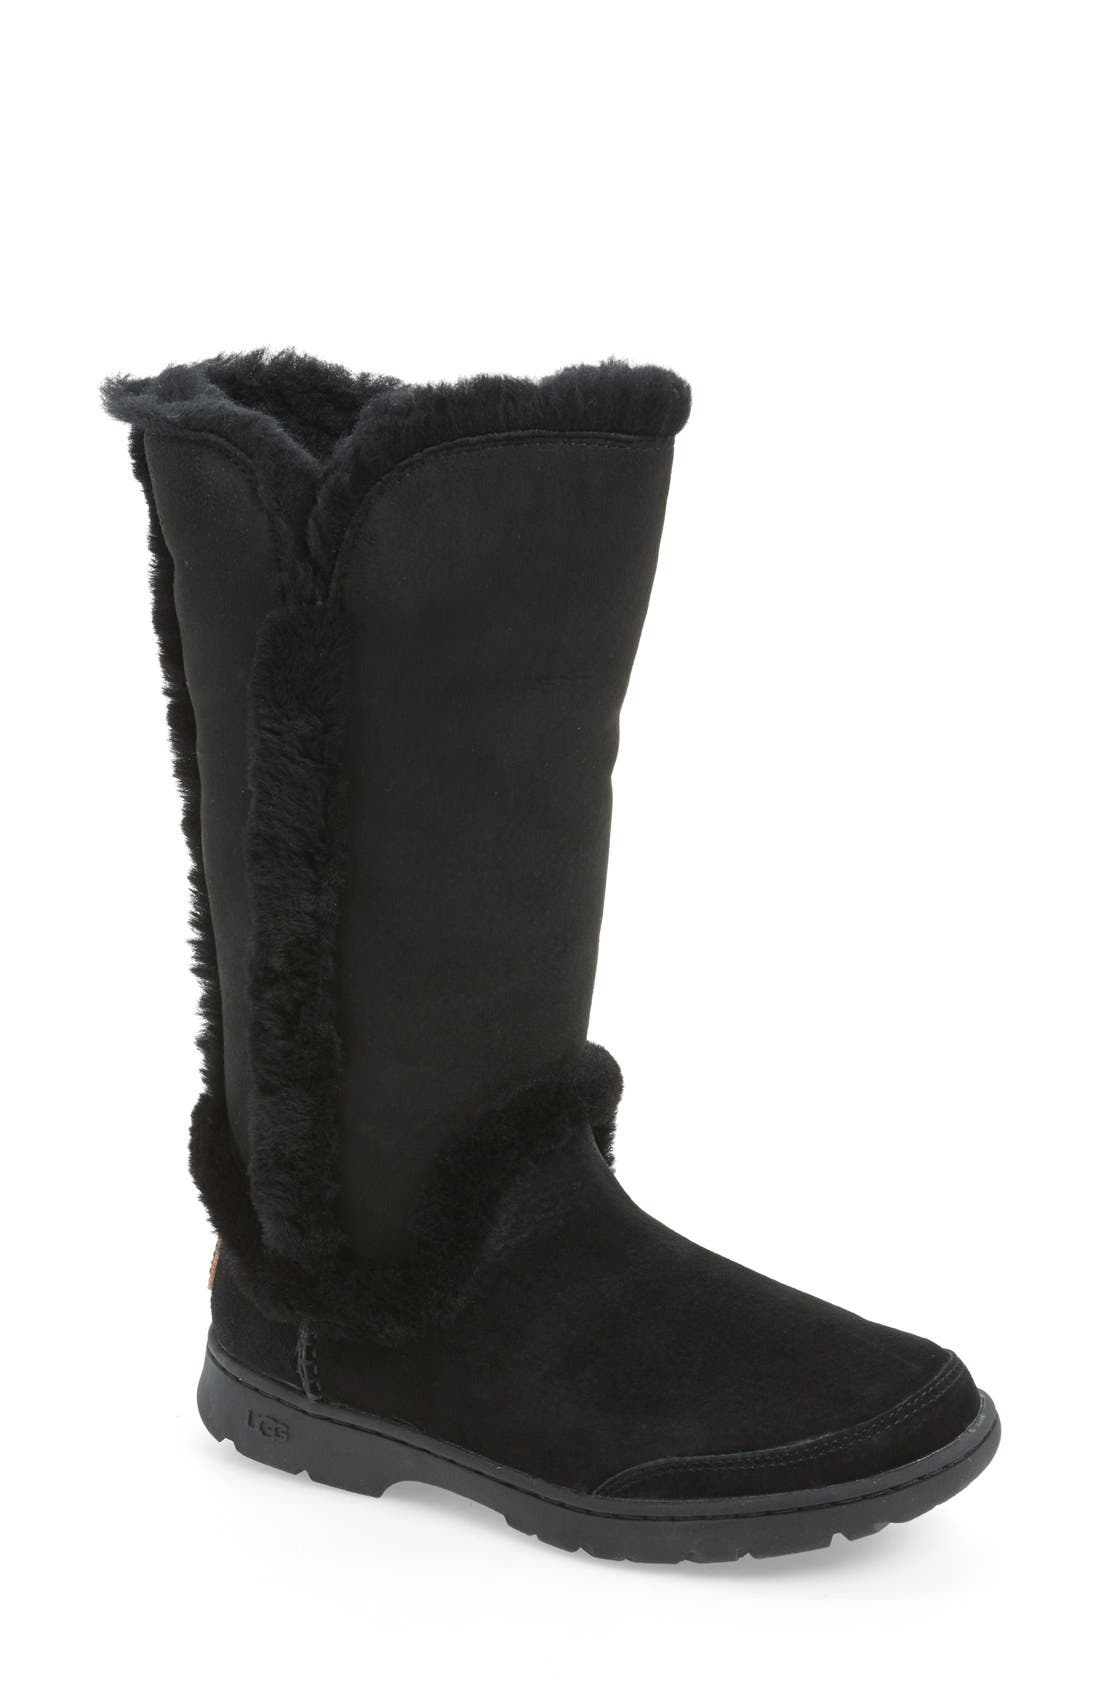 Alternate Image 1 Selected - UGG® Katia Waterproof Tall Boot (Women)